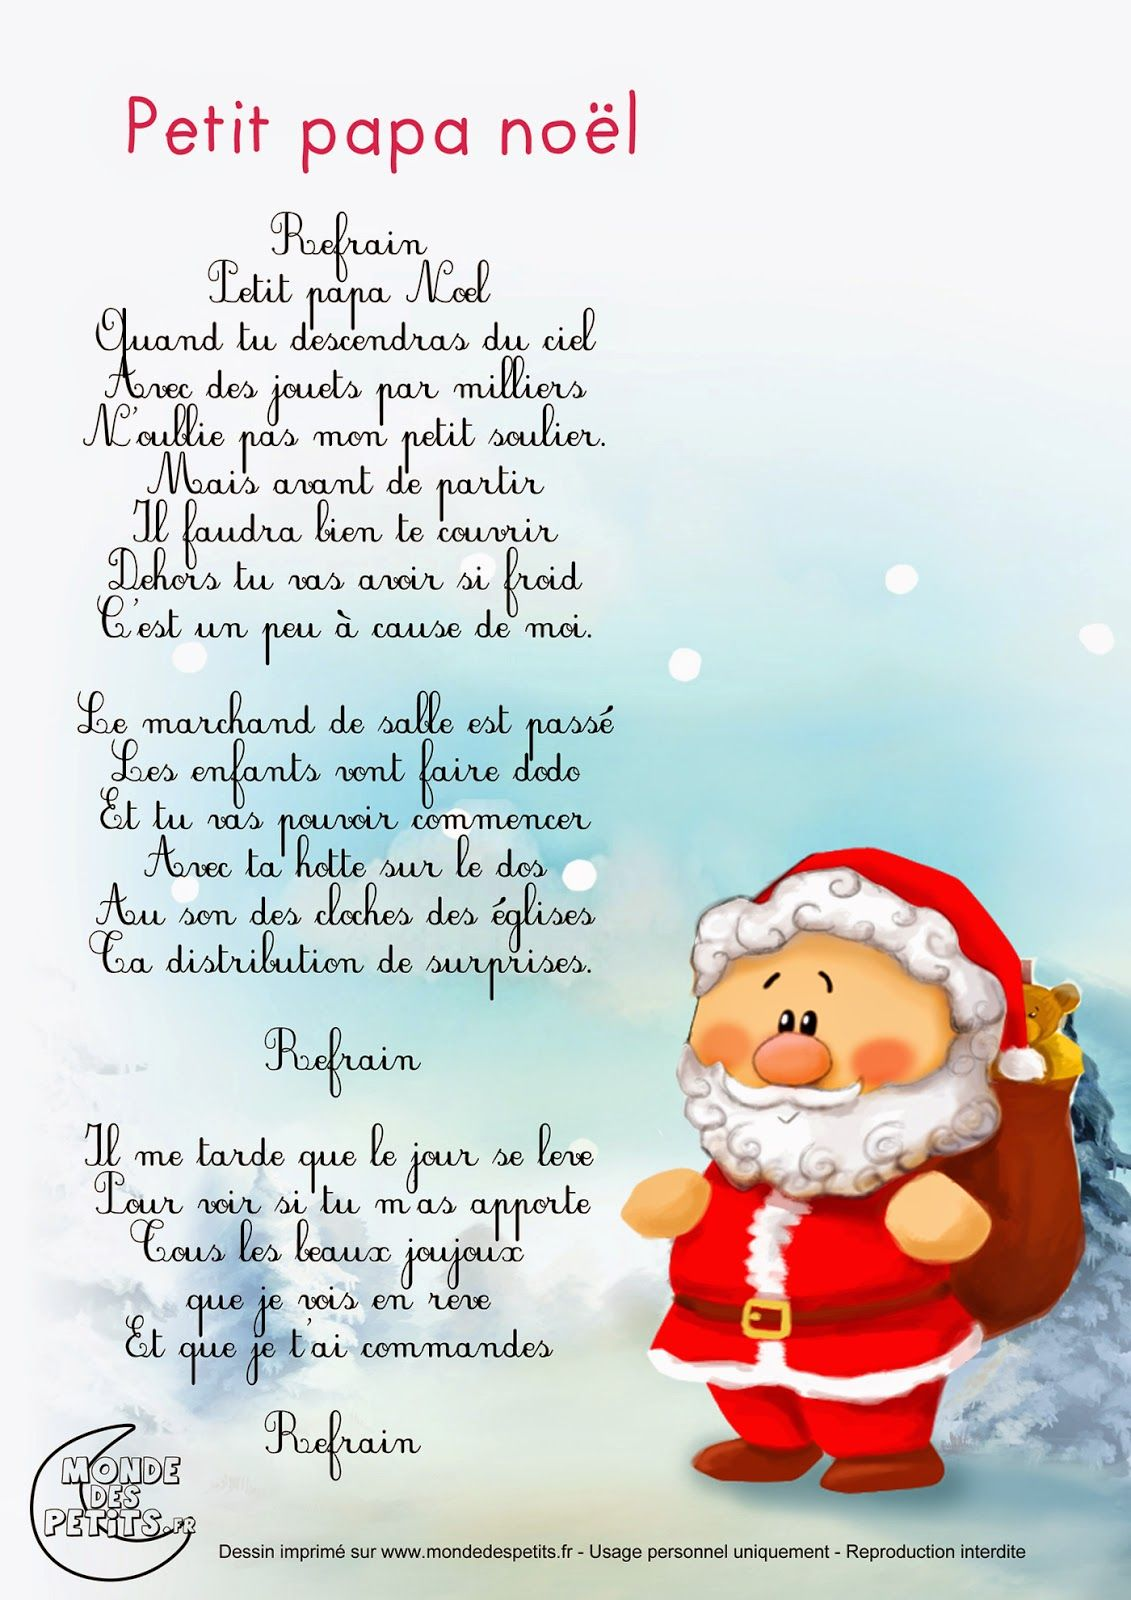 Histoires De Pompons The Blog Learn Play Histoires De Pompoms Wish You A Merry Christmas With The Fren French Christmas Songs French Christmas French Kids